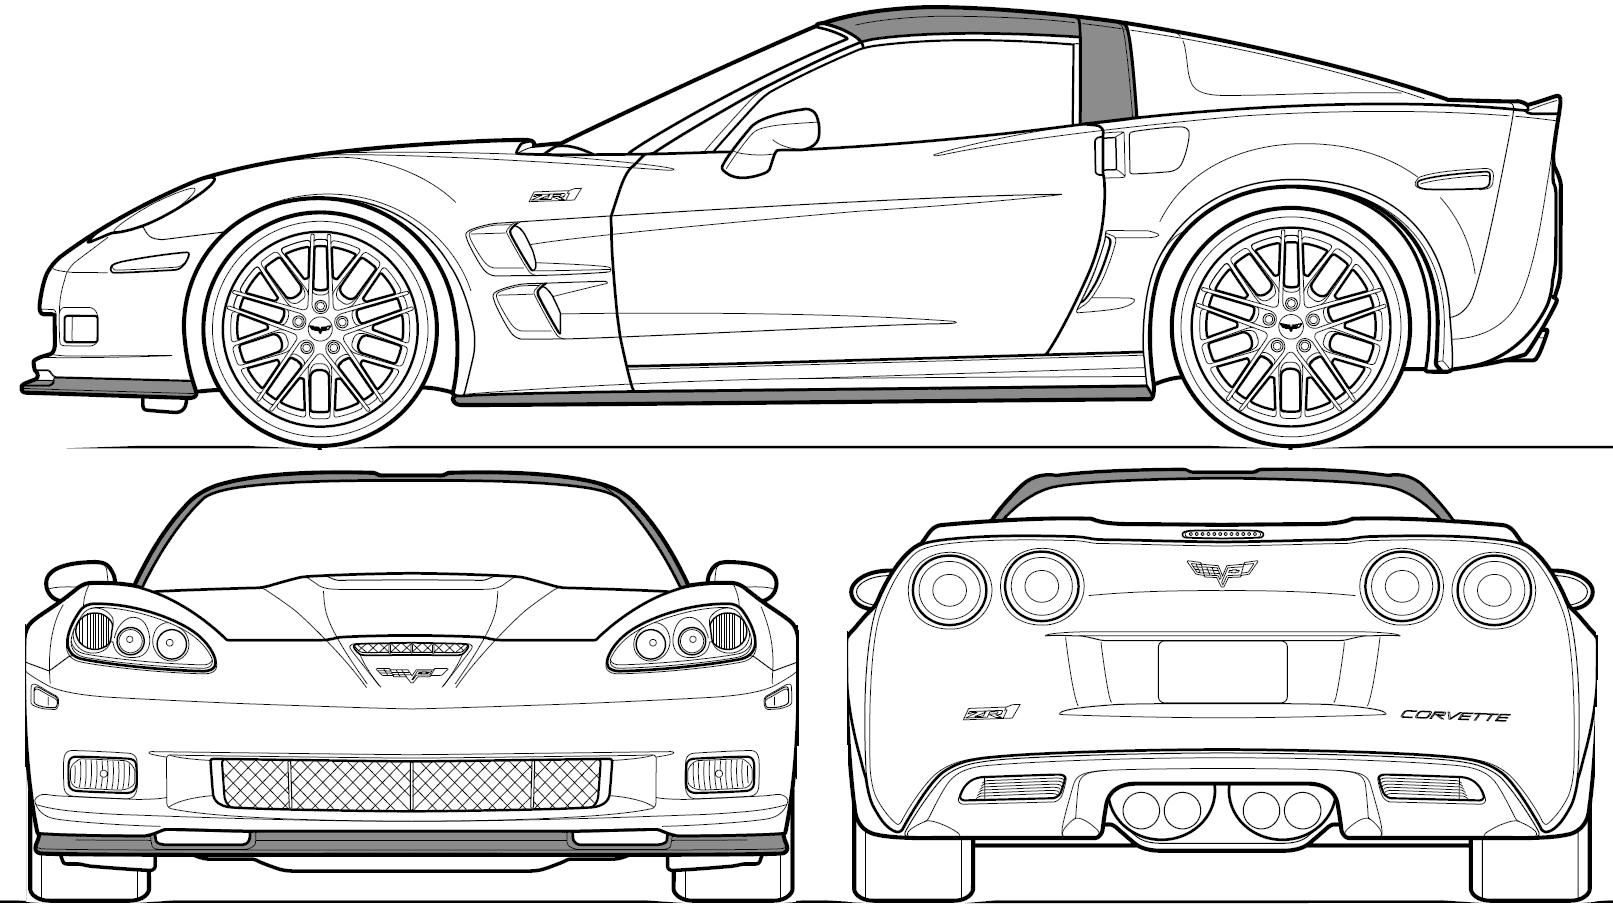 automobile blueprints | Car Blueprints: Chevrolet Corvette C6 ZR1 ...